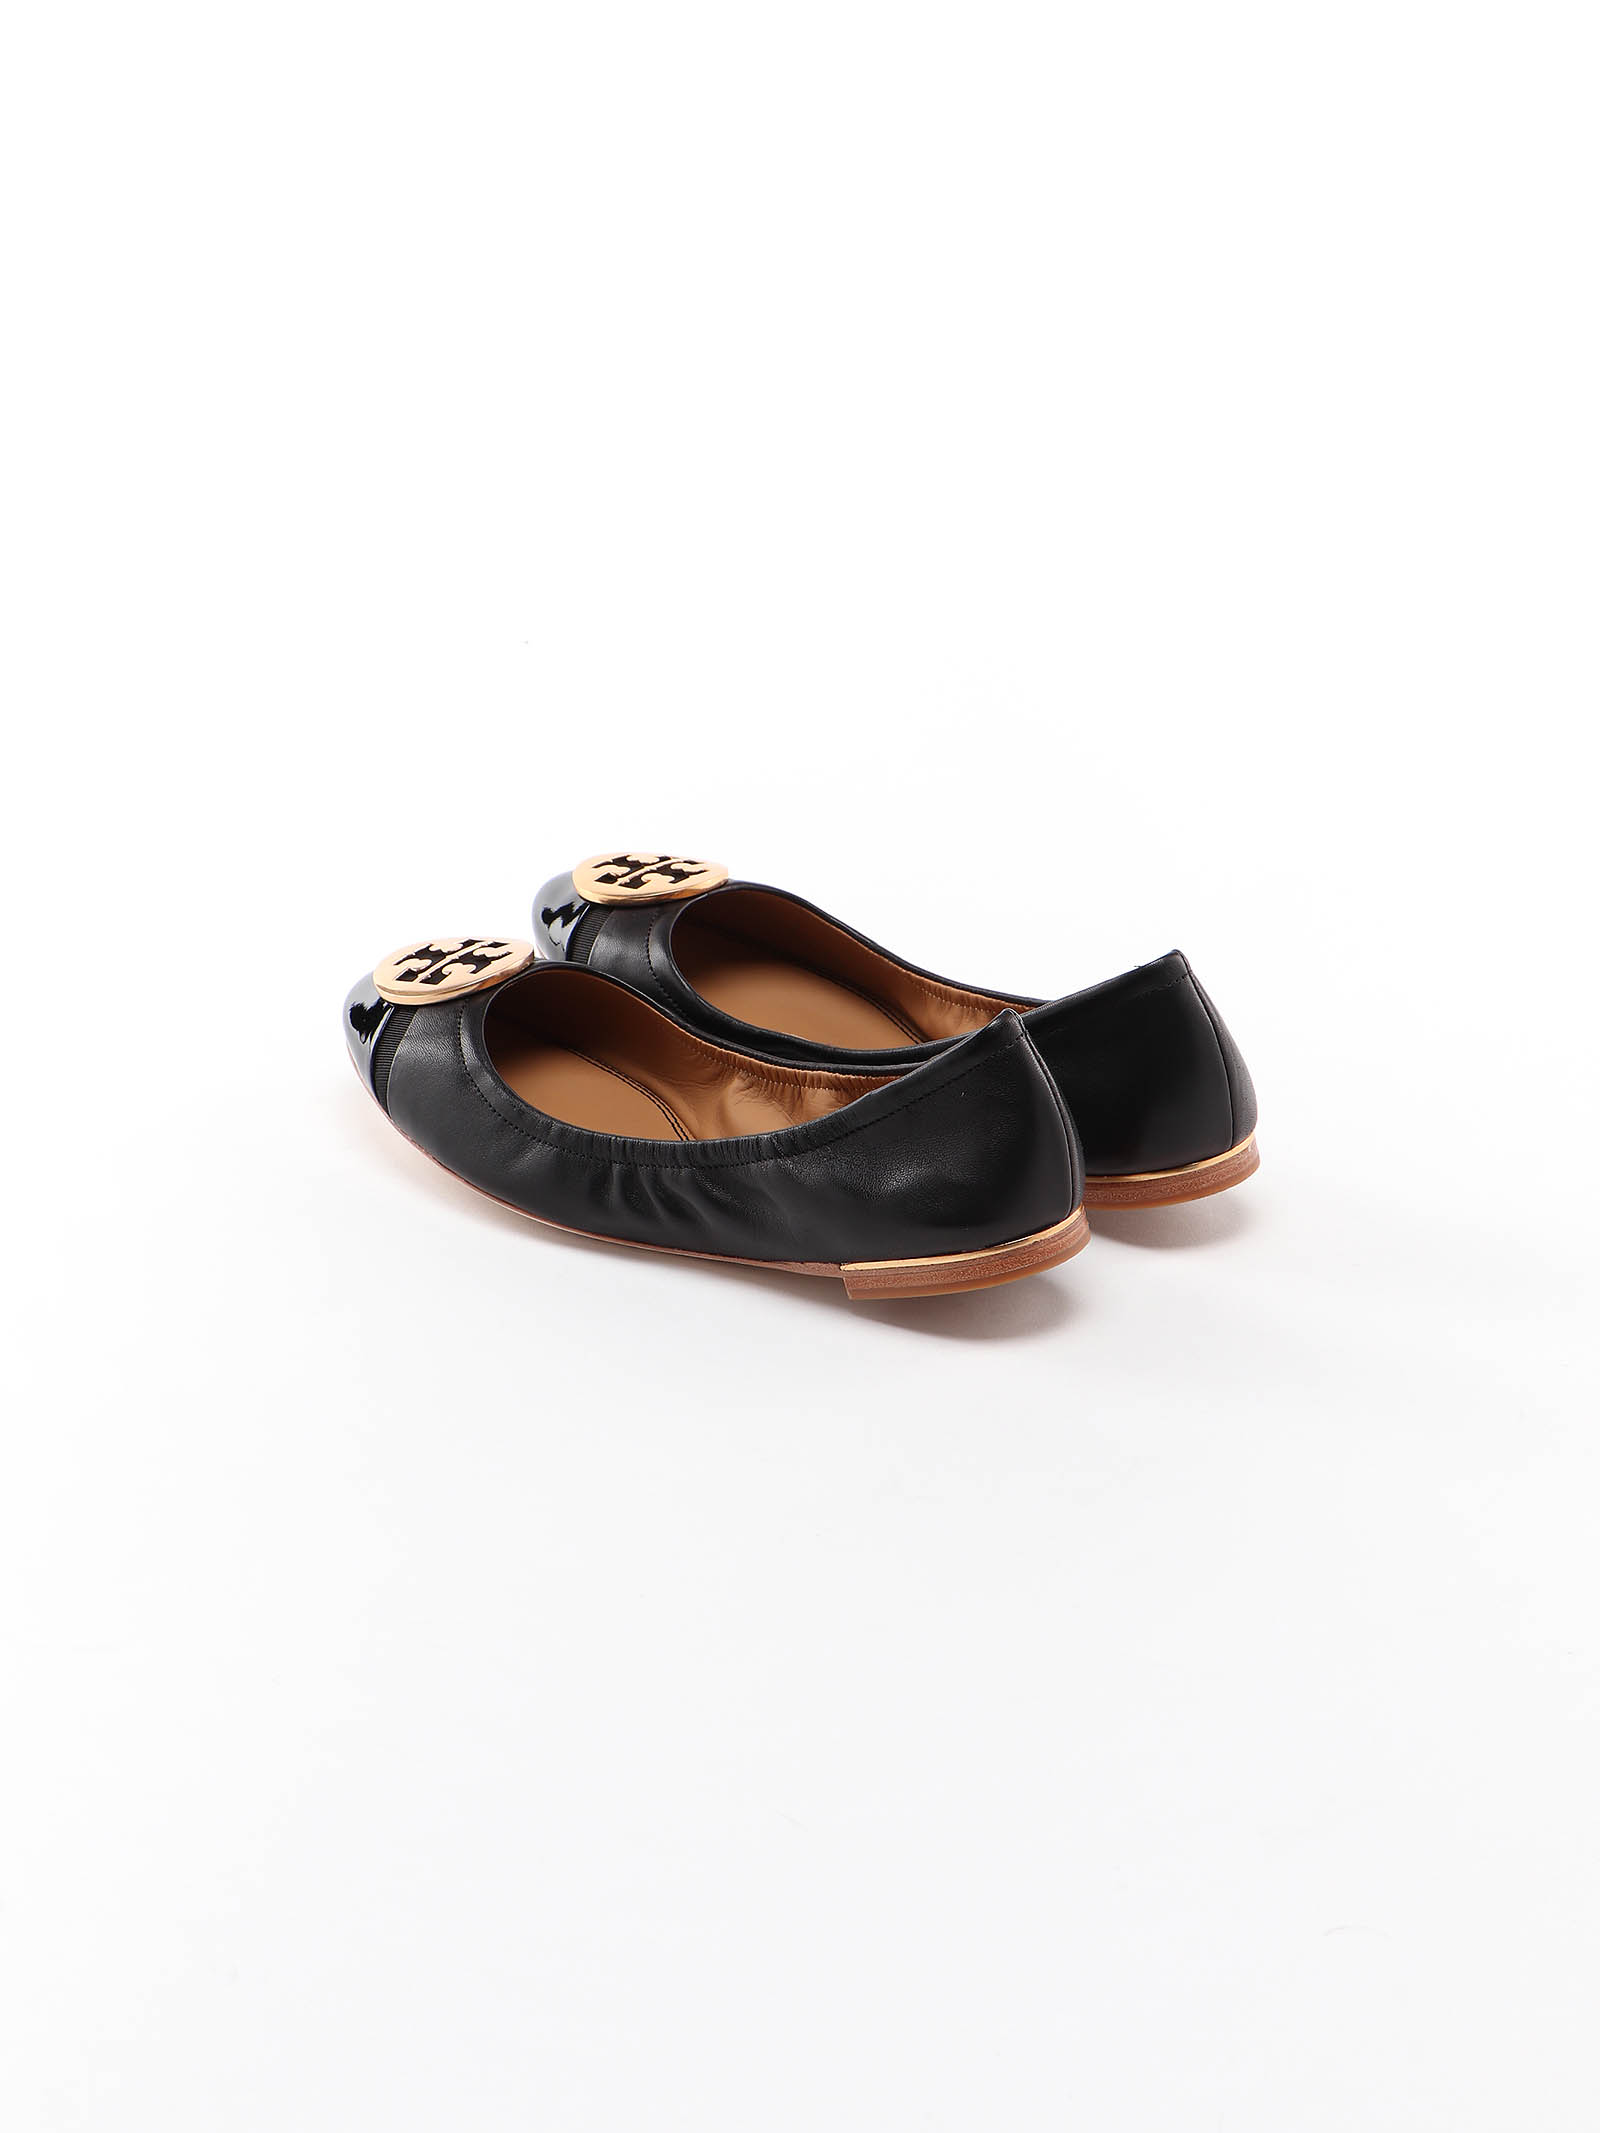 Picture of Tory Burch | Minnie Cap-Toe Ballet